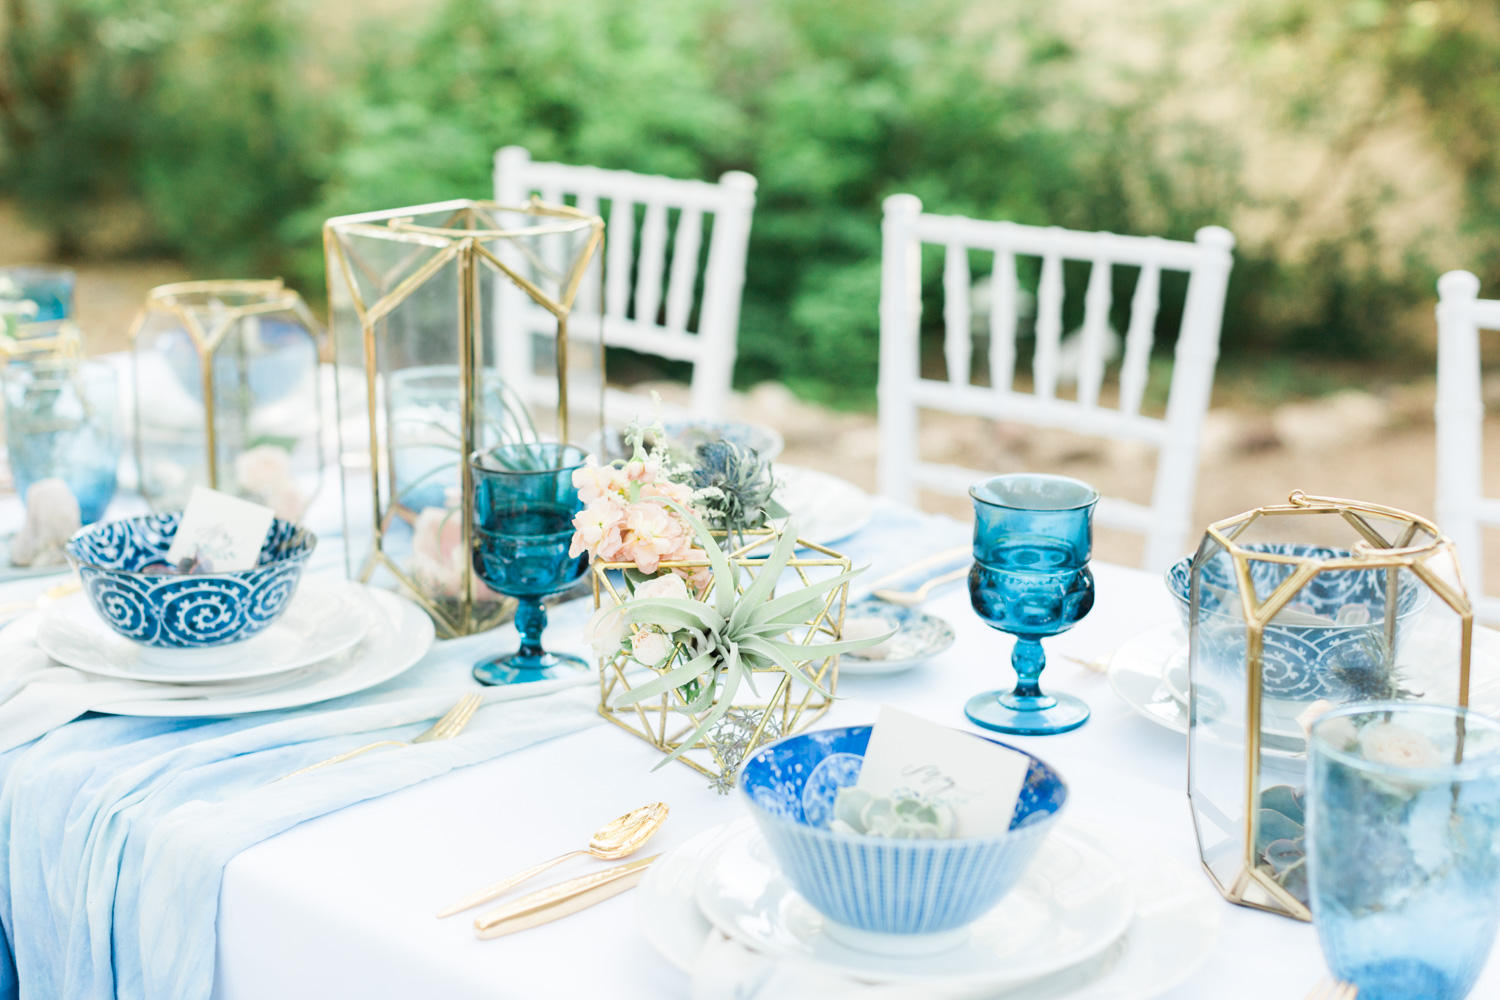 Bohemian indigo table setting with gold flatware